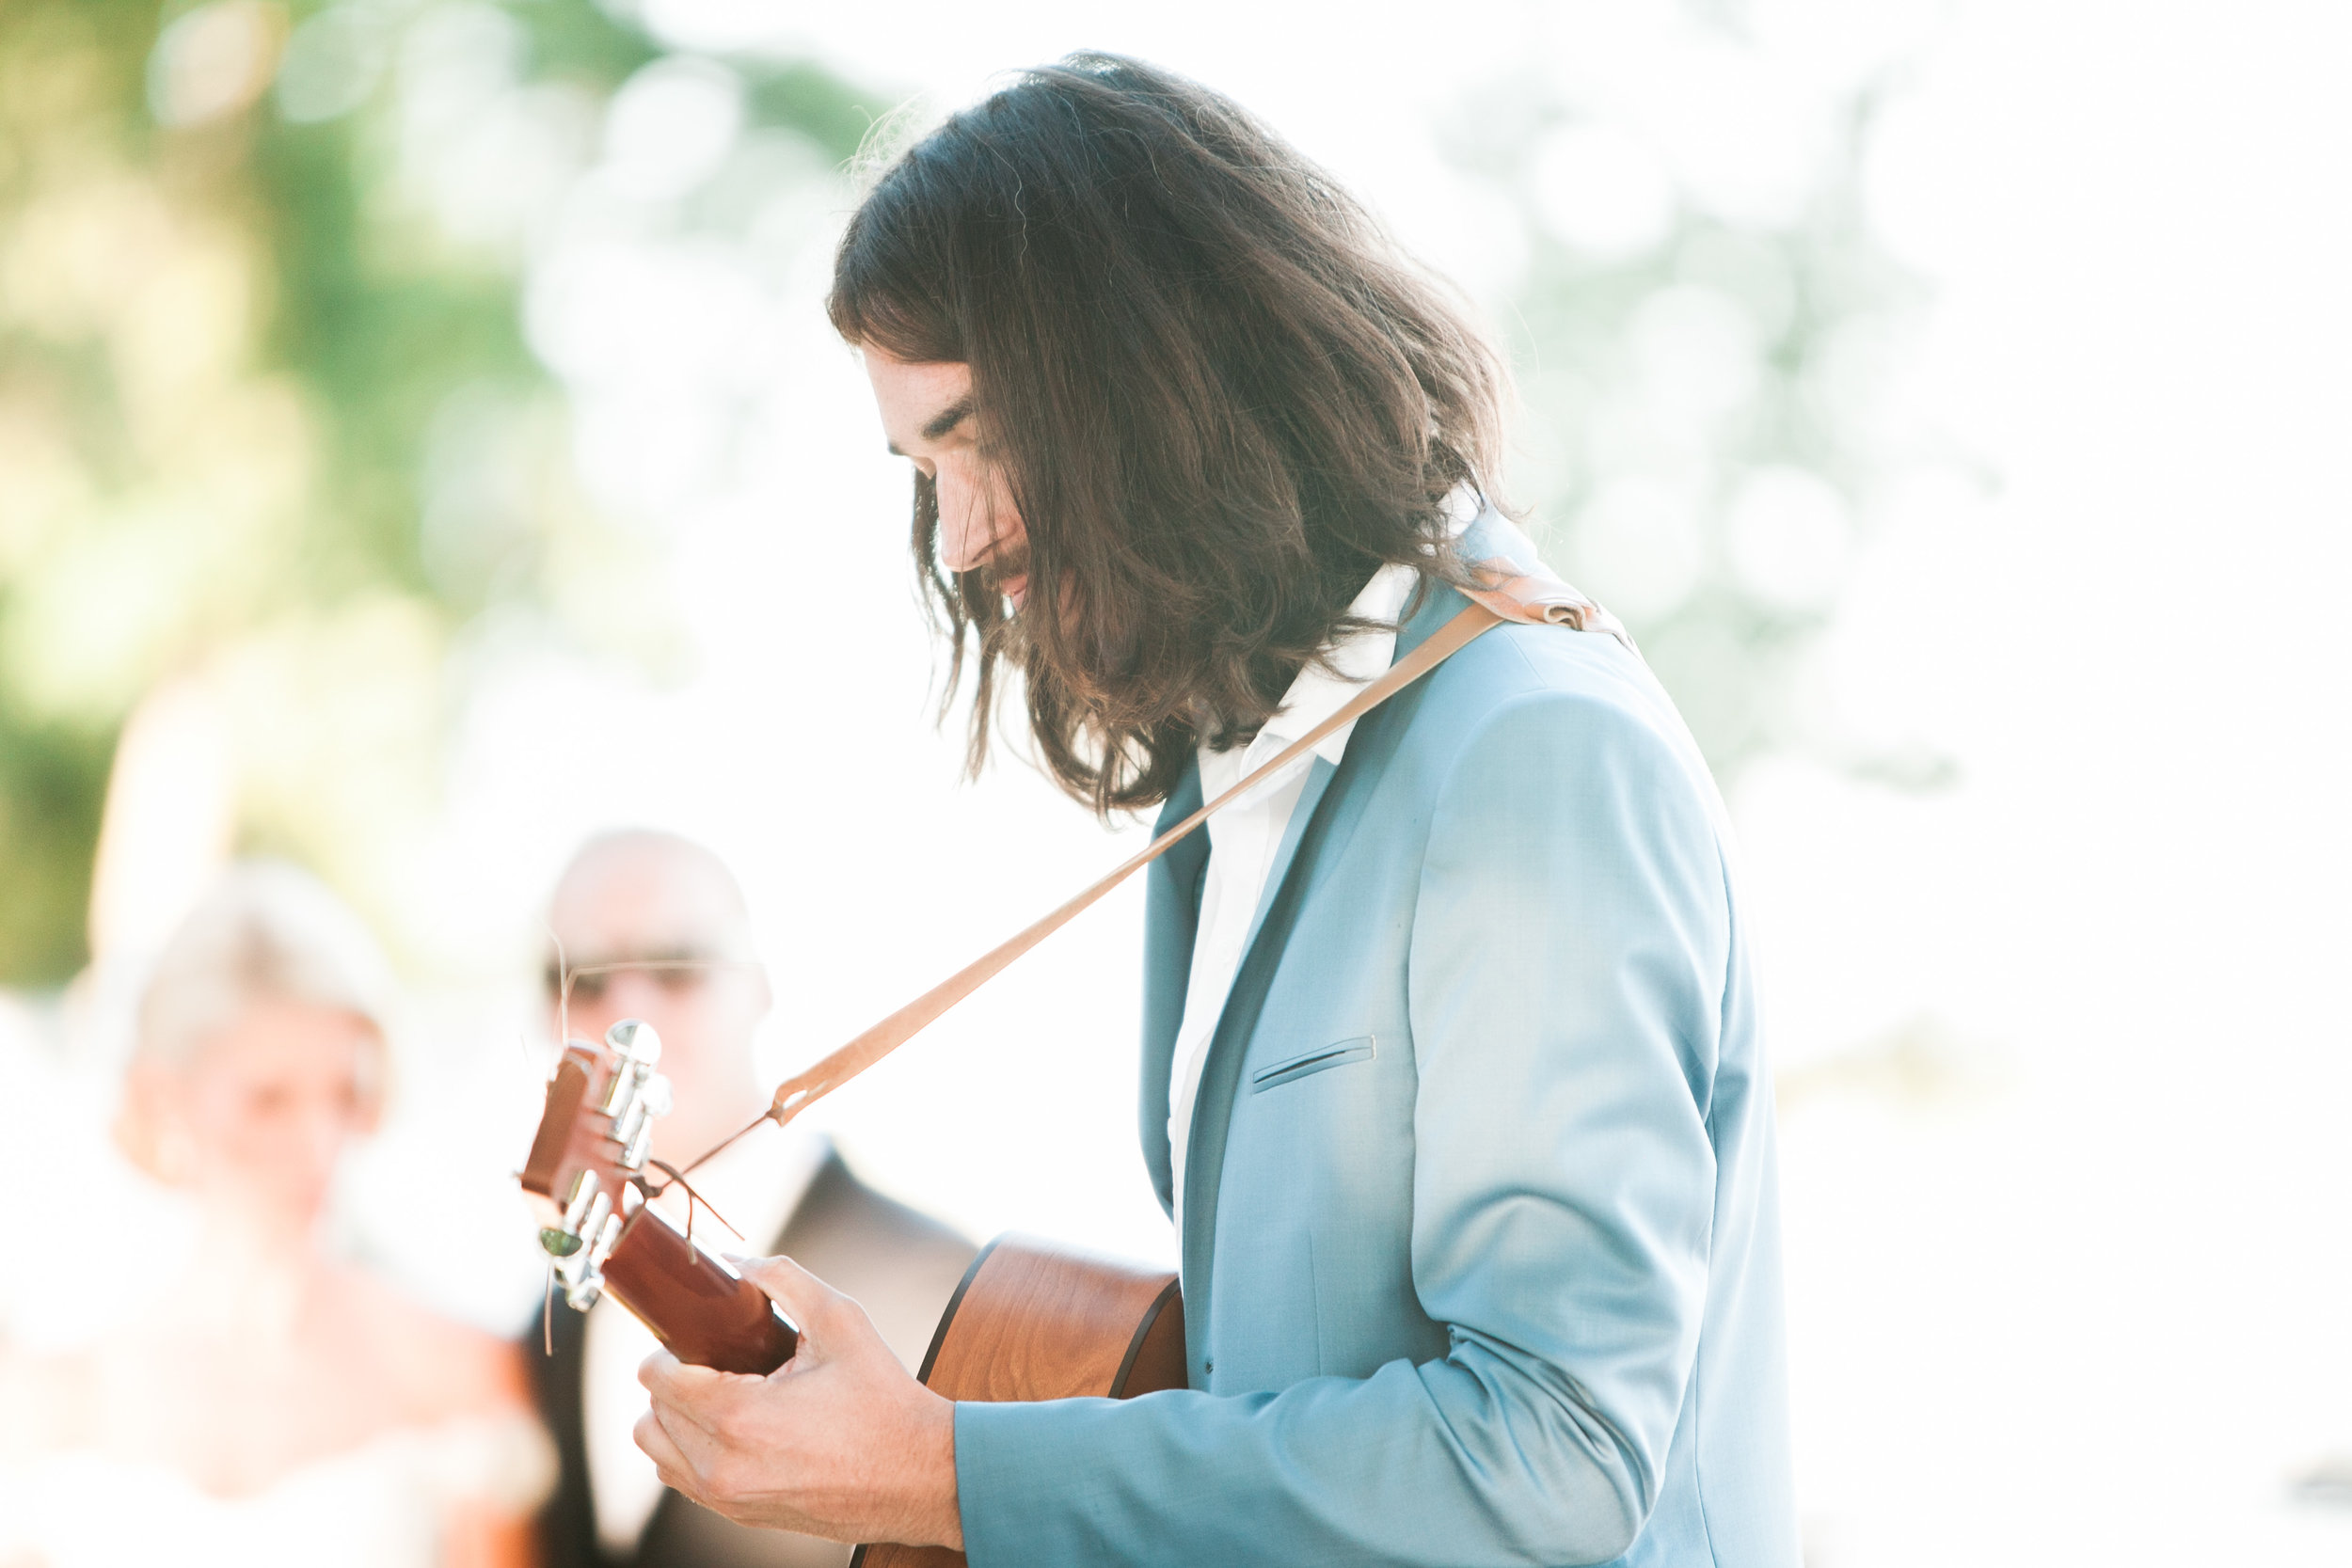 Man playing guitar at outdoor wedding